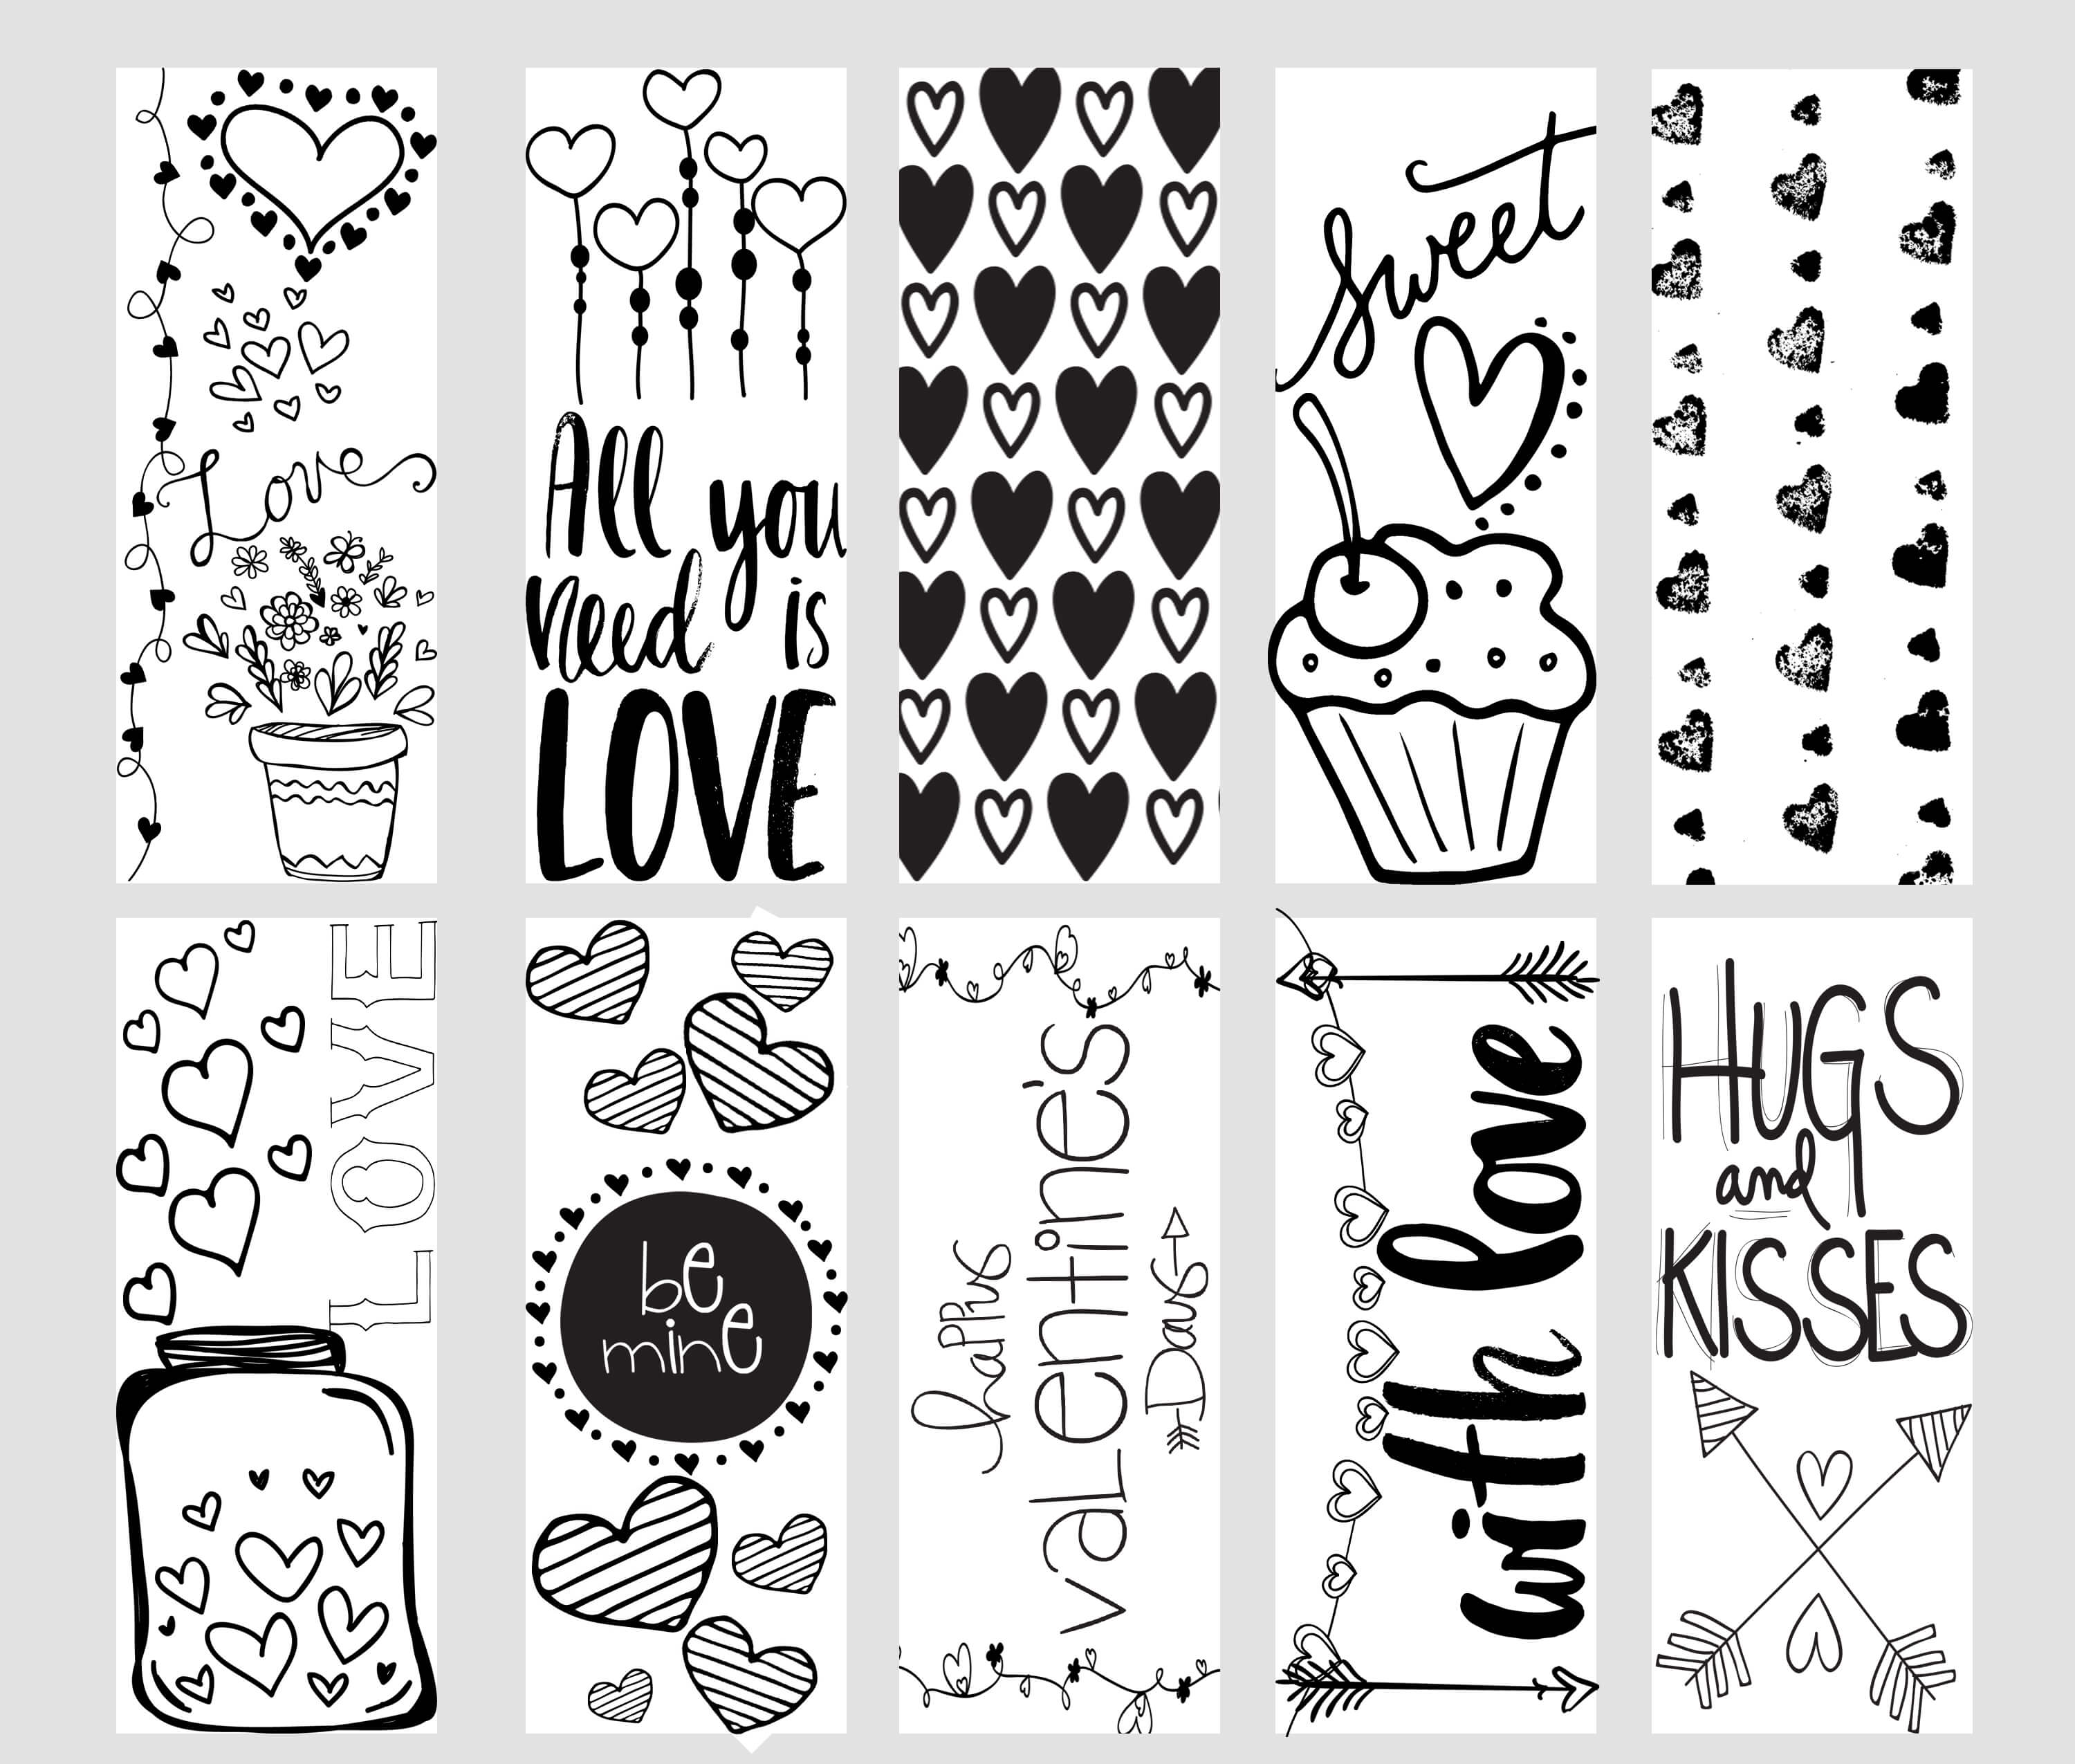 Valentine Printable Coloring Page Bookmarks - Kleinworth & Co